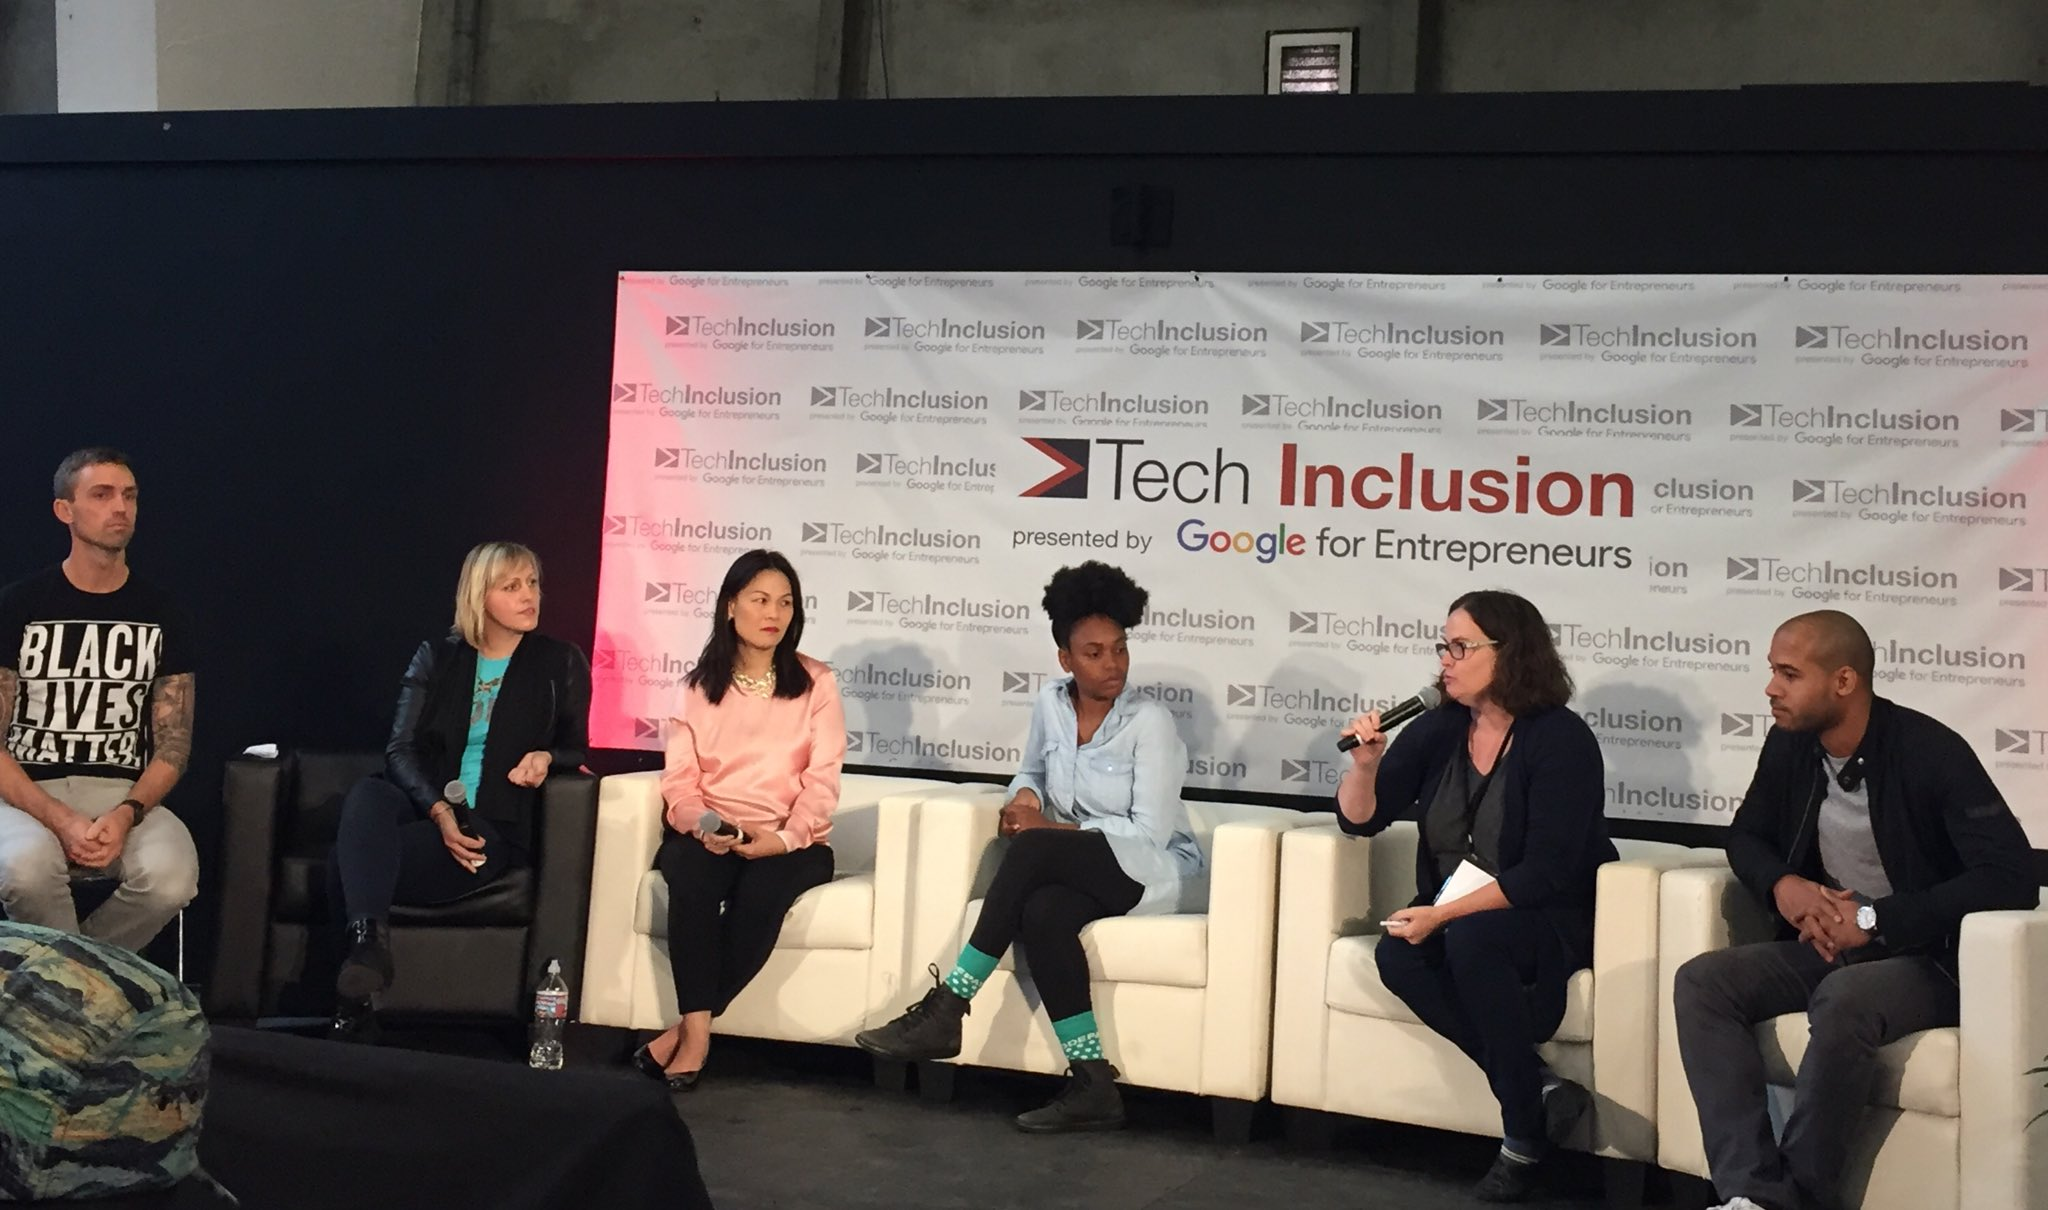 Everyone has the opportunity to make a difference. #TechInclusion16 #CSforAll #inclusion #learntocode https://t.co/etkGPOeBcH